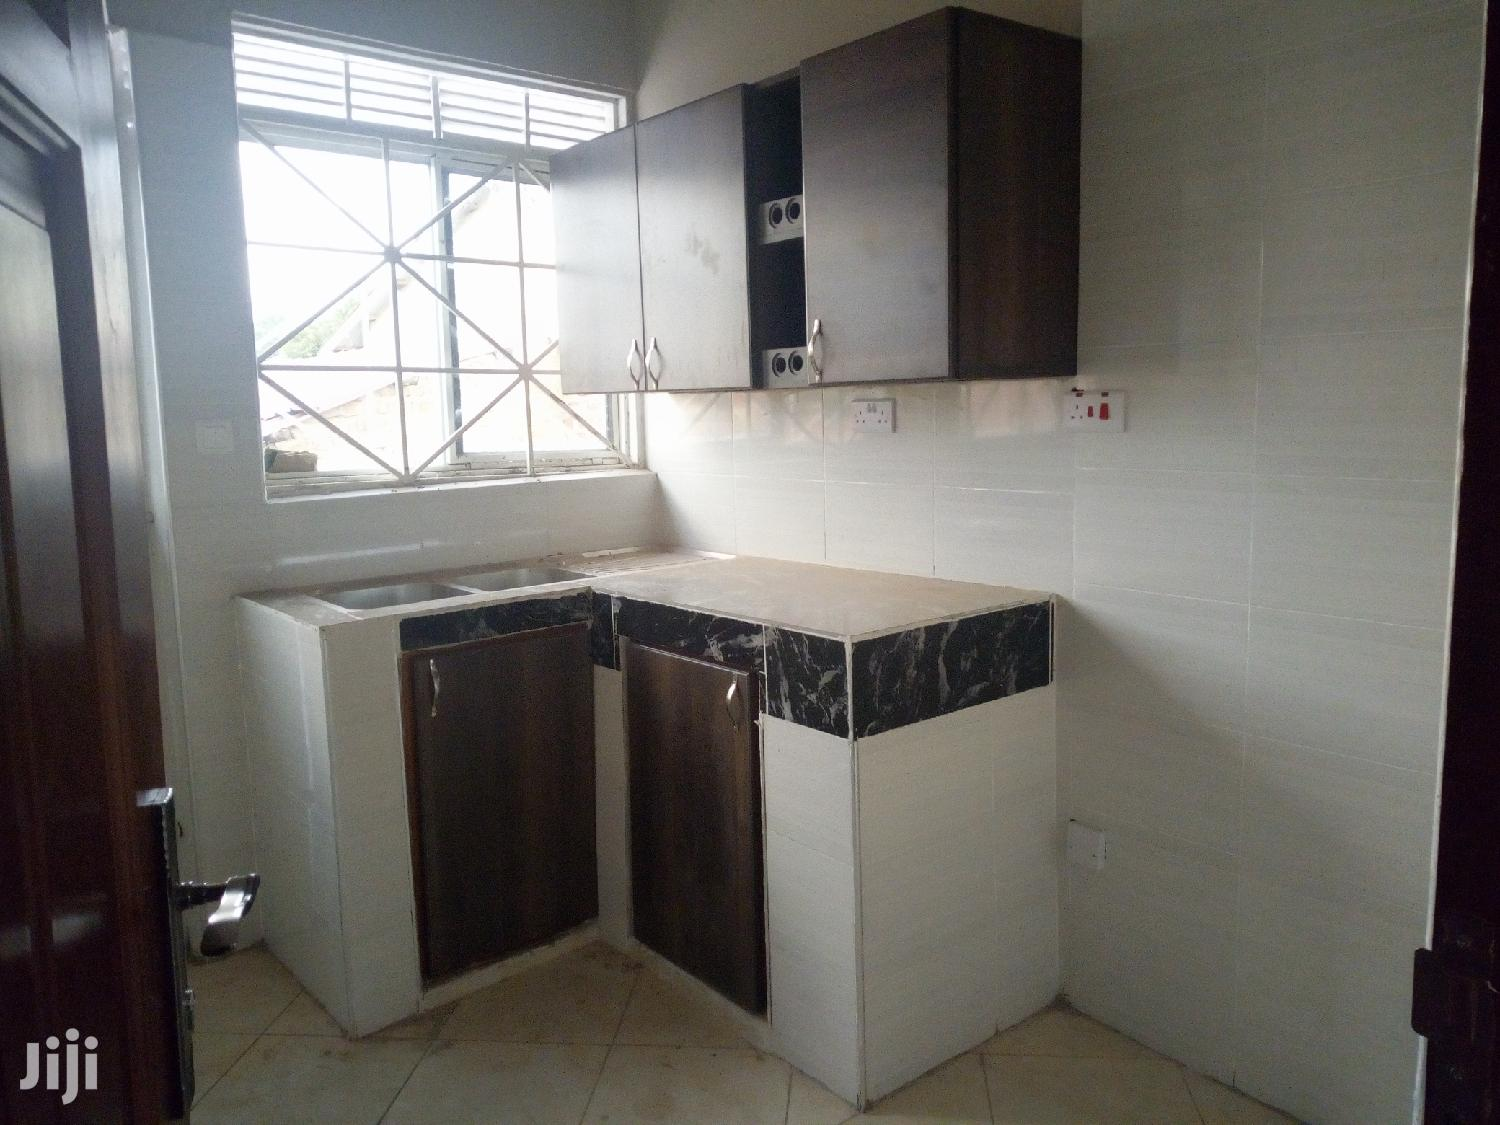 Kyanja Two Bedroom House for Rent   Houses & Apartments For Rent for sale in Kampala, Central Region, Uganda